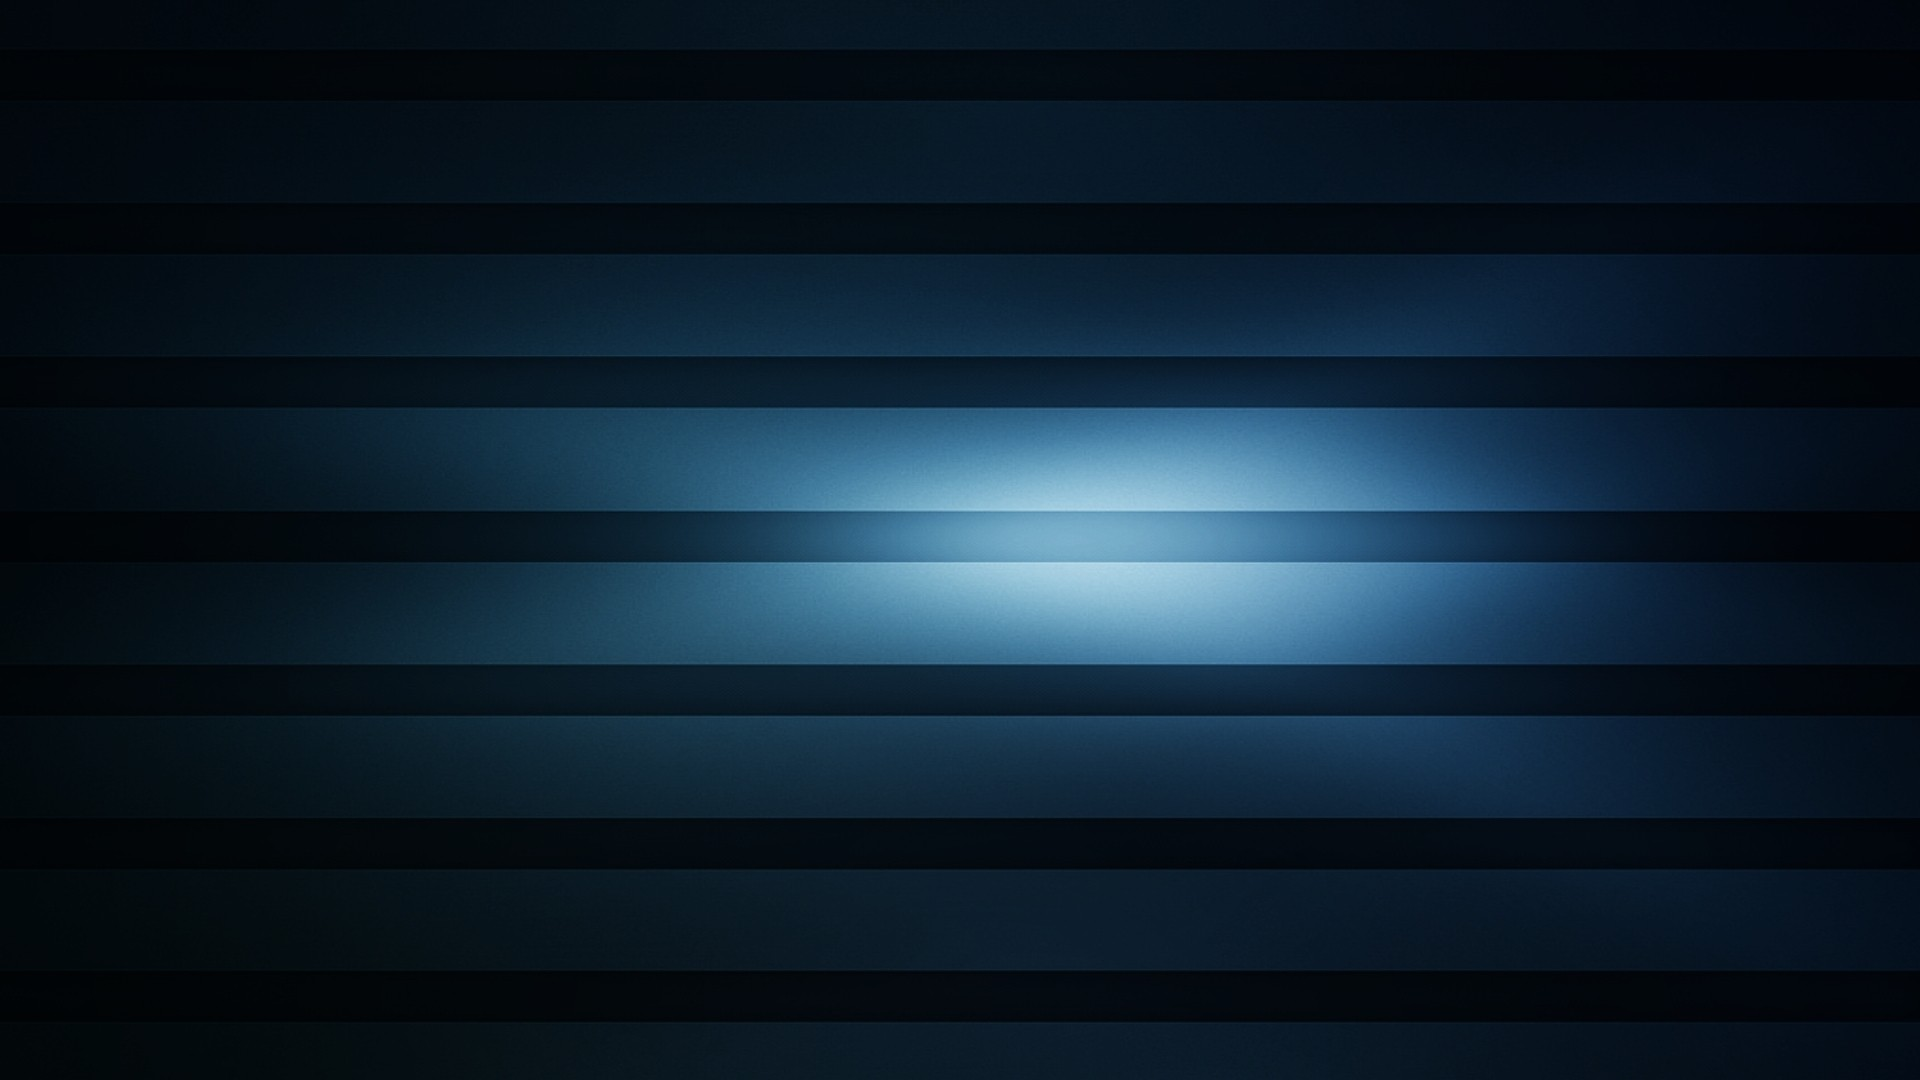 Stripes Background Download Free Cool Full Hd HD Wallpapers Download Free Images Wallpaper [1000image.com]